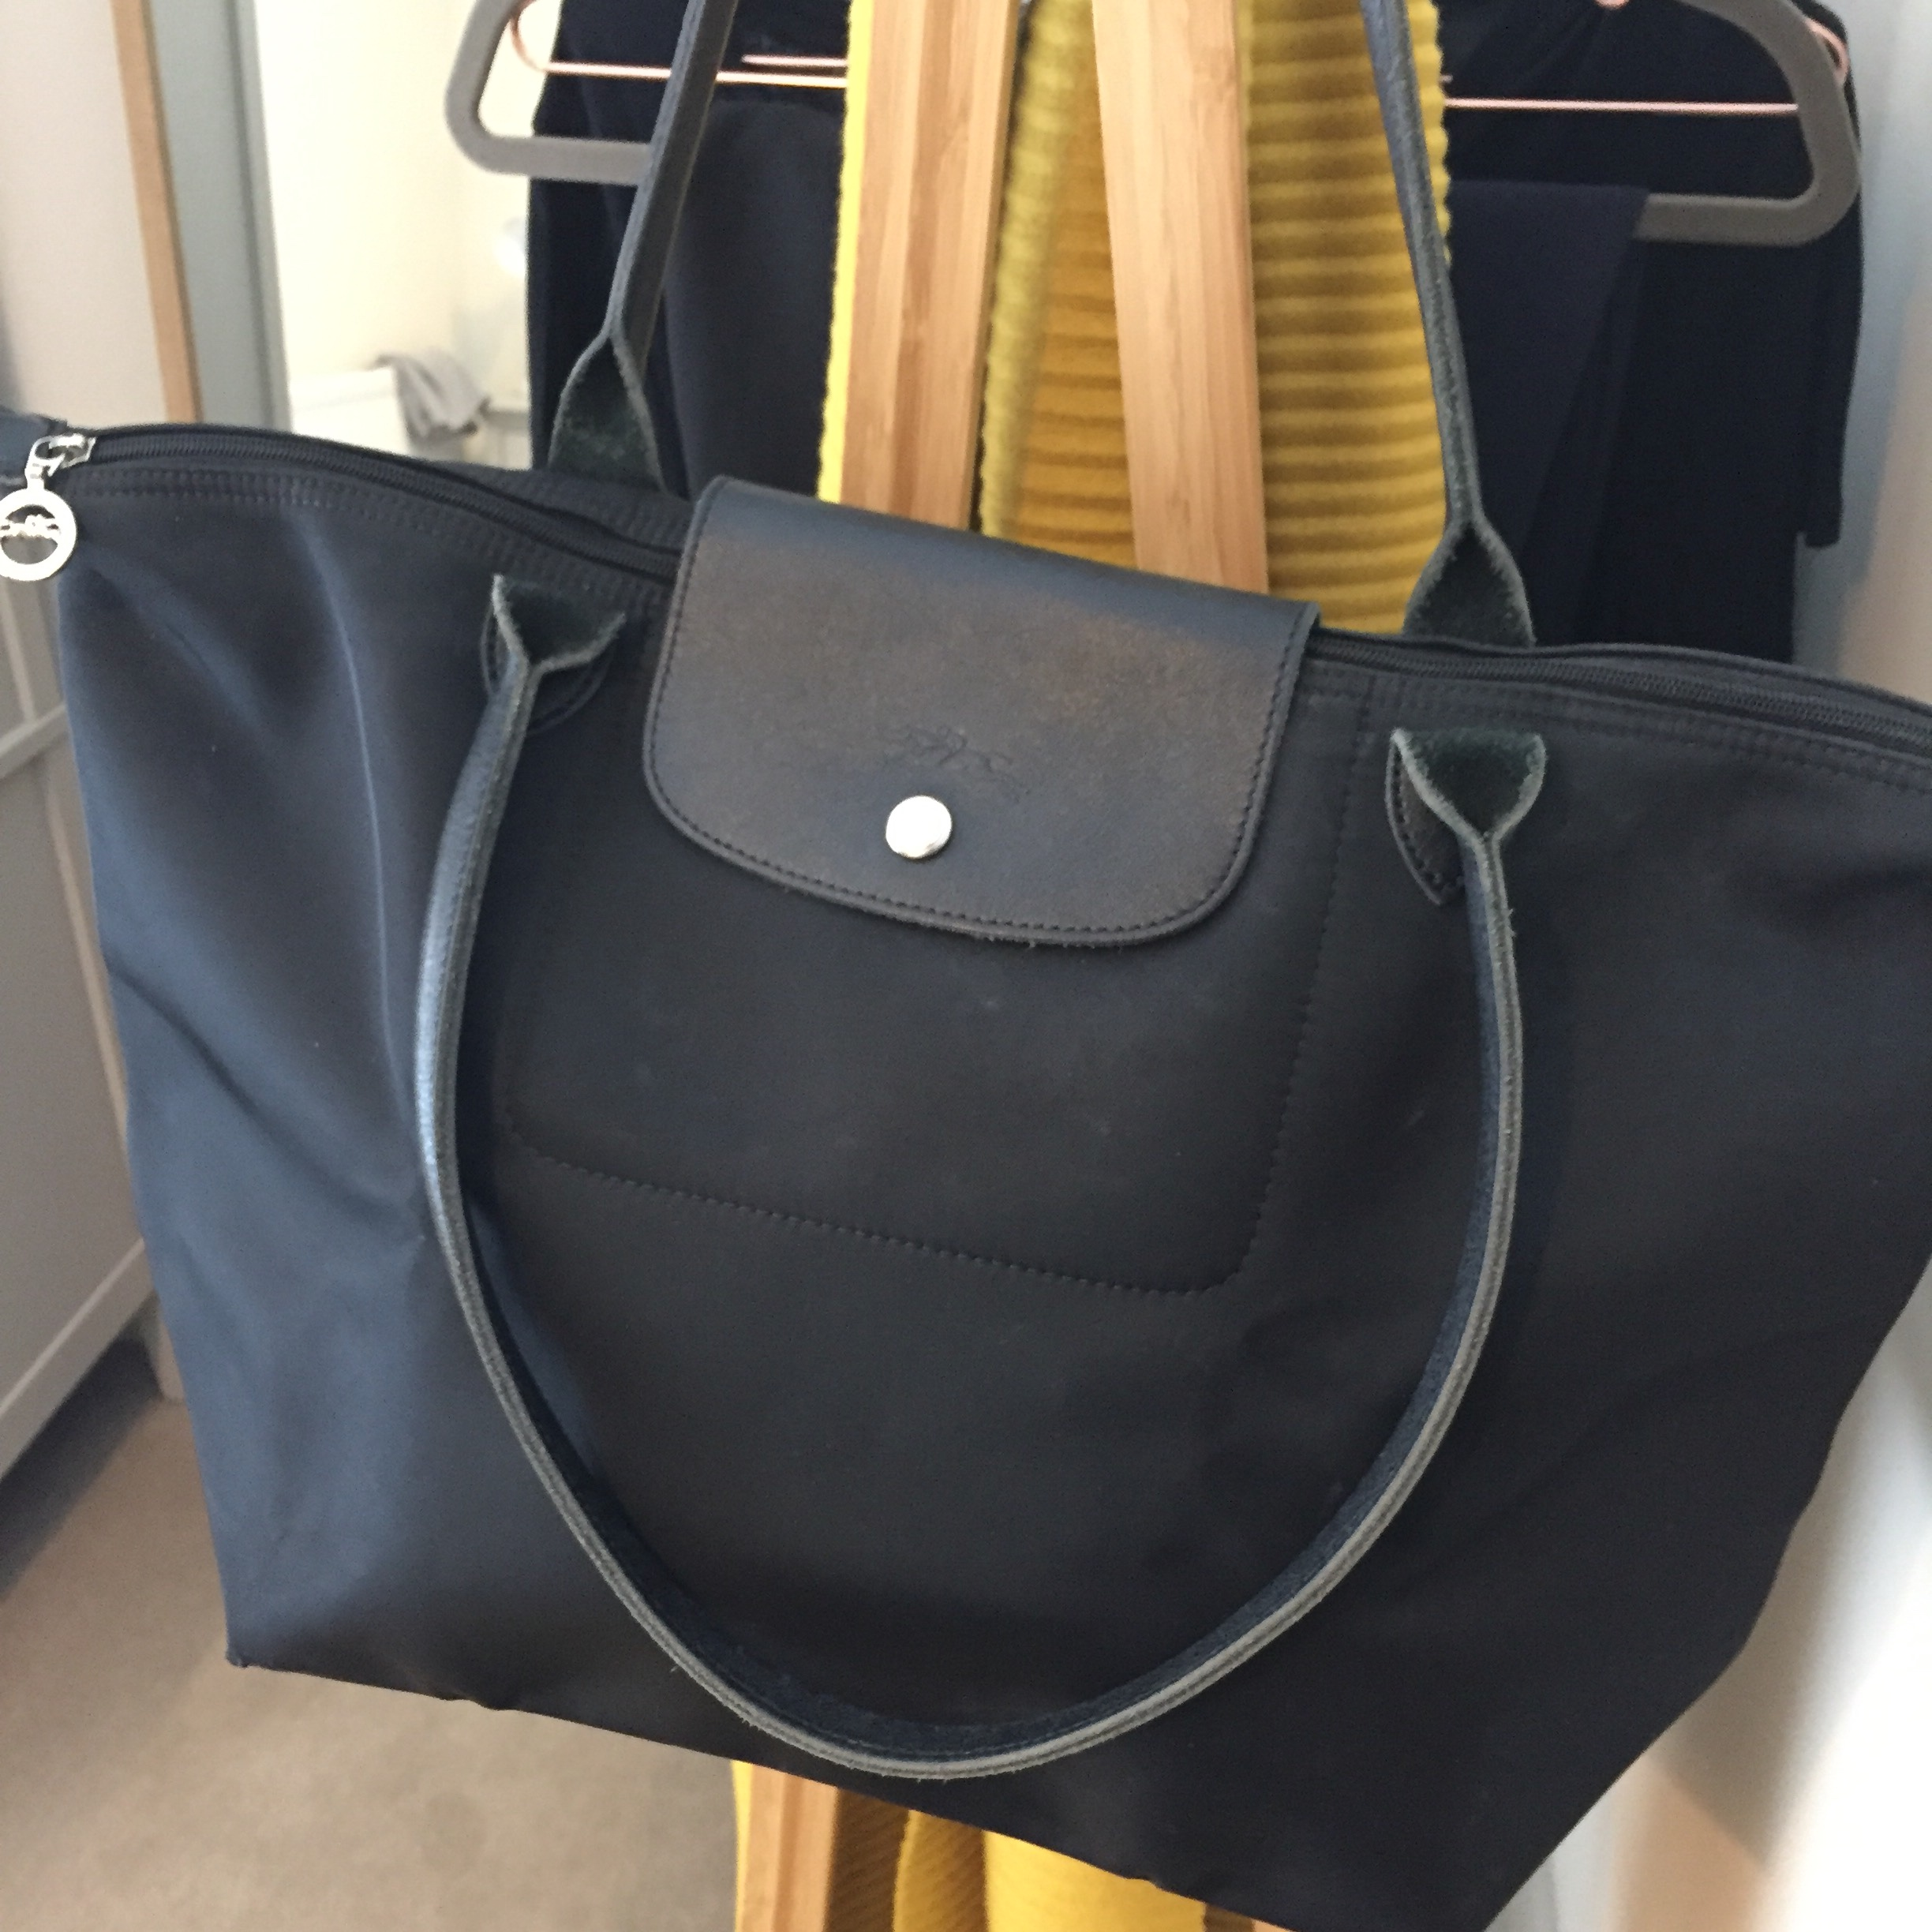 Longchamp Le Pliage Neo Shopper with long handles